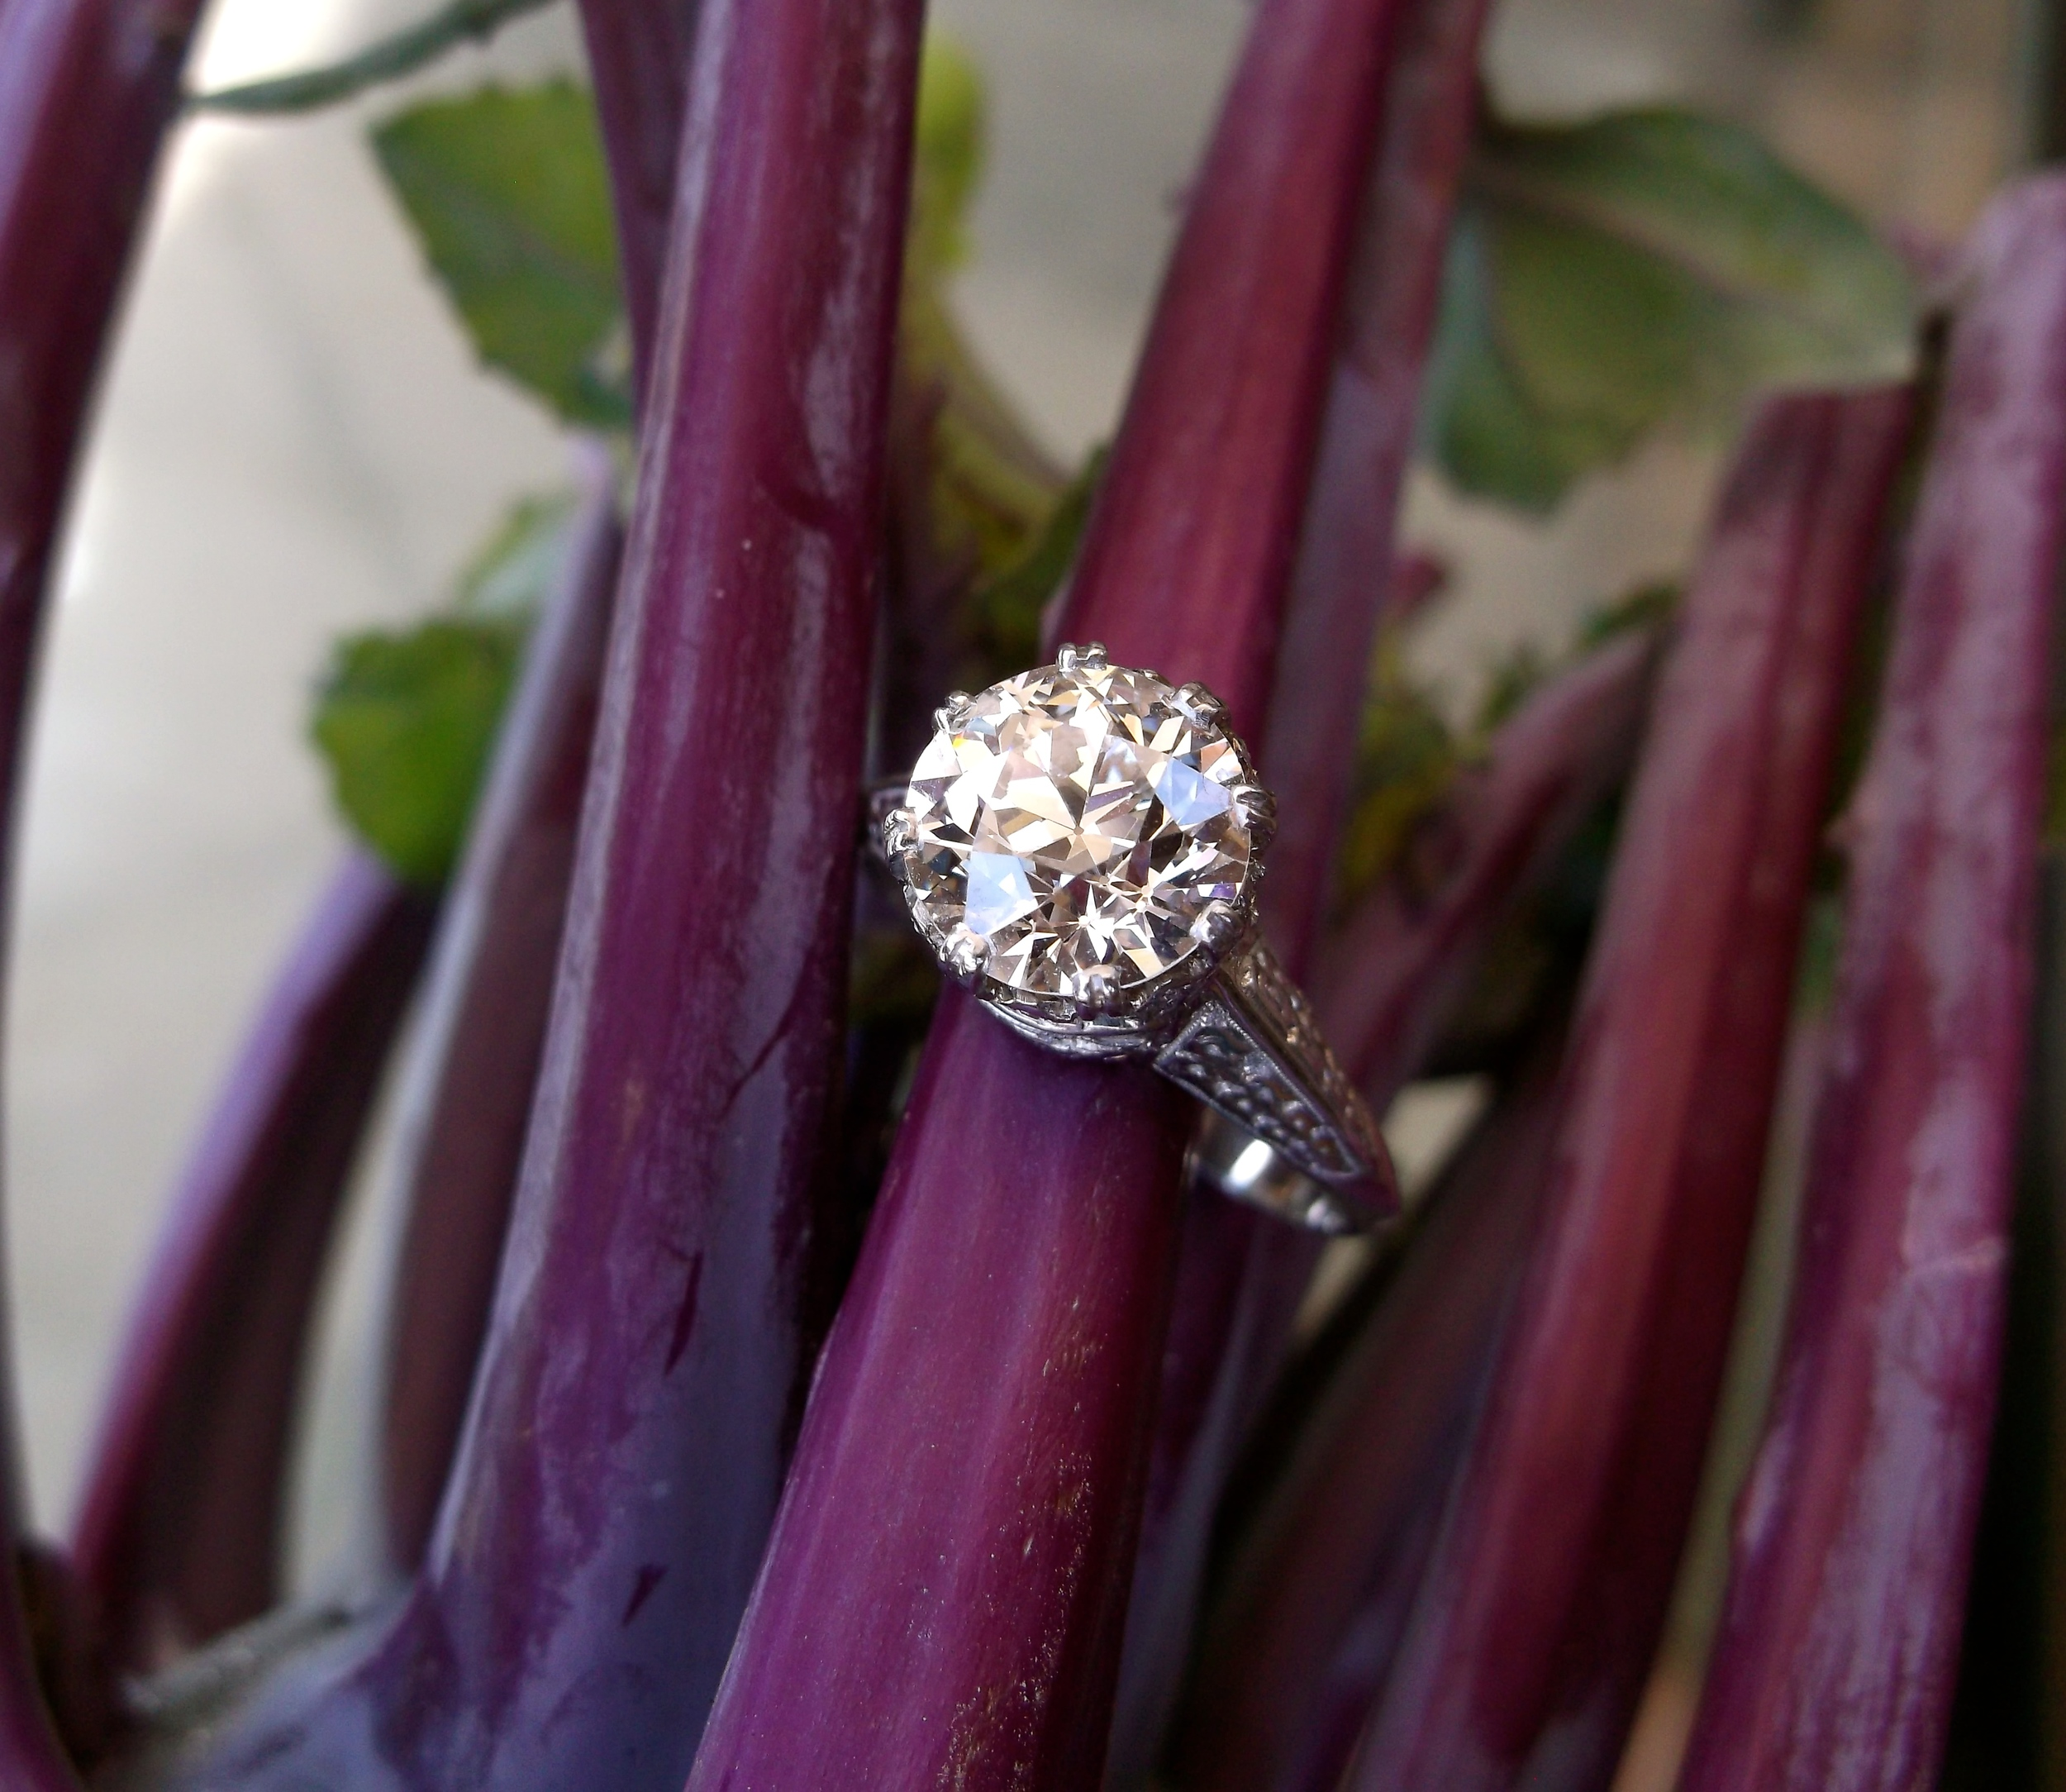 SOLD - Exquisite 1920's 2.11 carat Old European cut diamond set in a beautifully detailed platinum mounting.